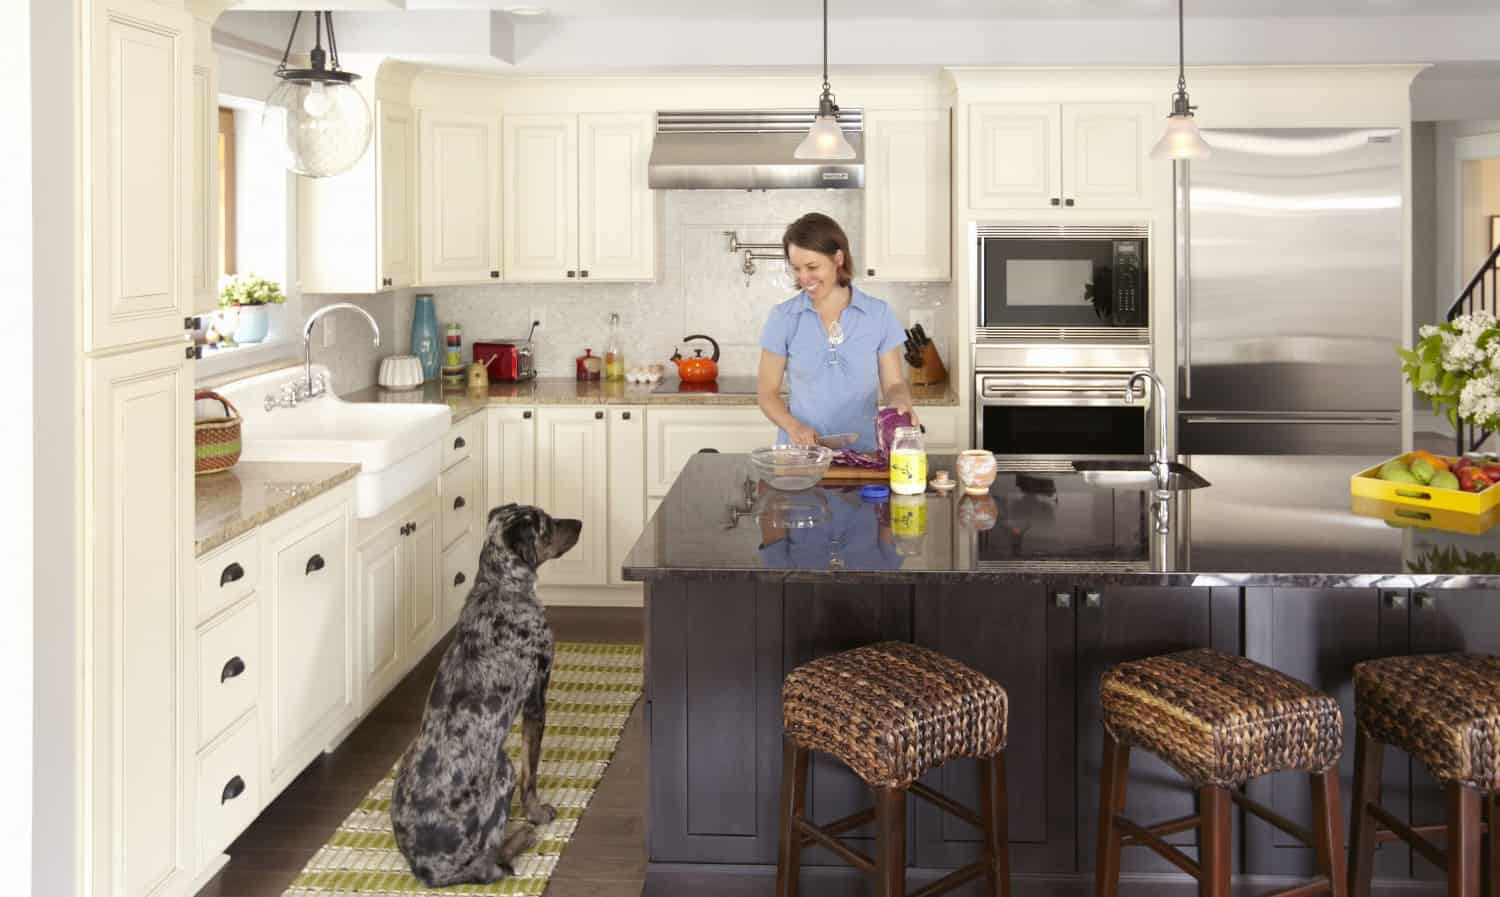 Charcoal gray Shaker-style kitchen cabinets with a white Shaker island